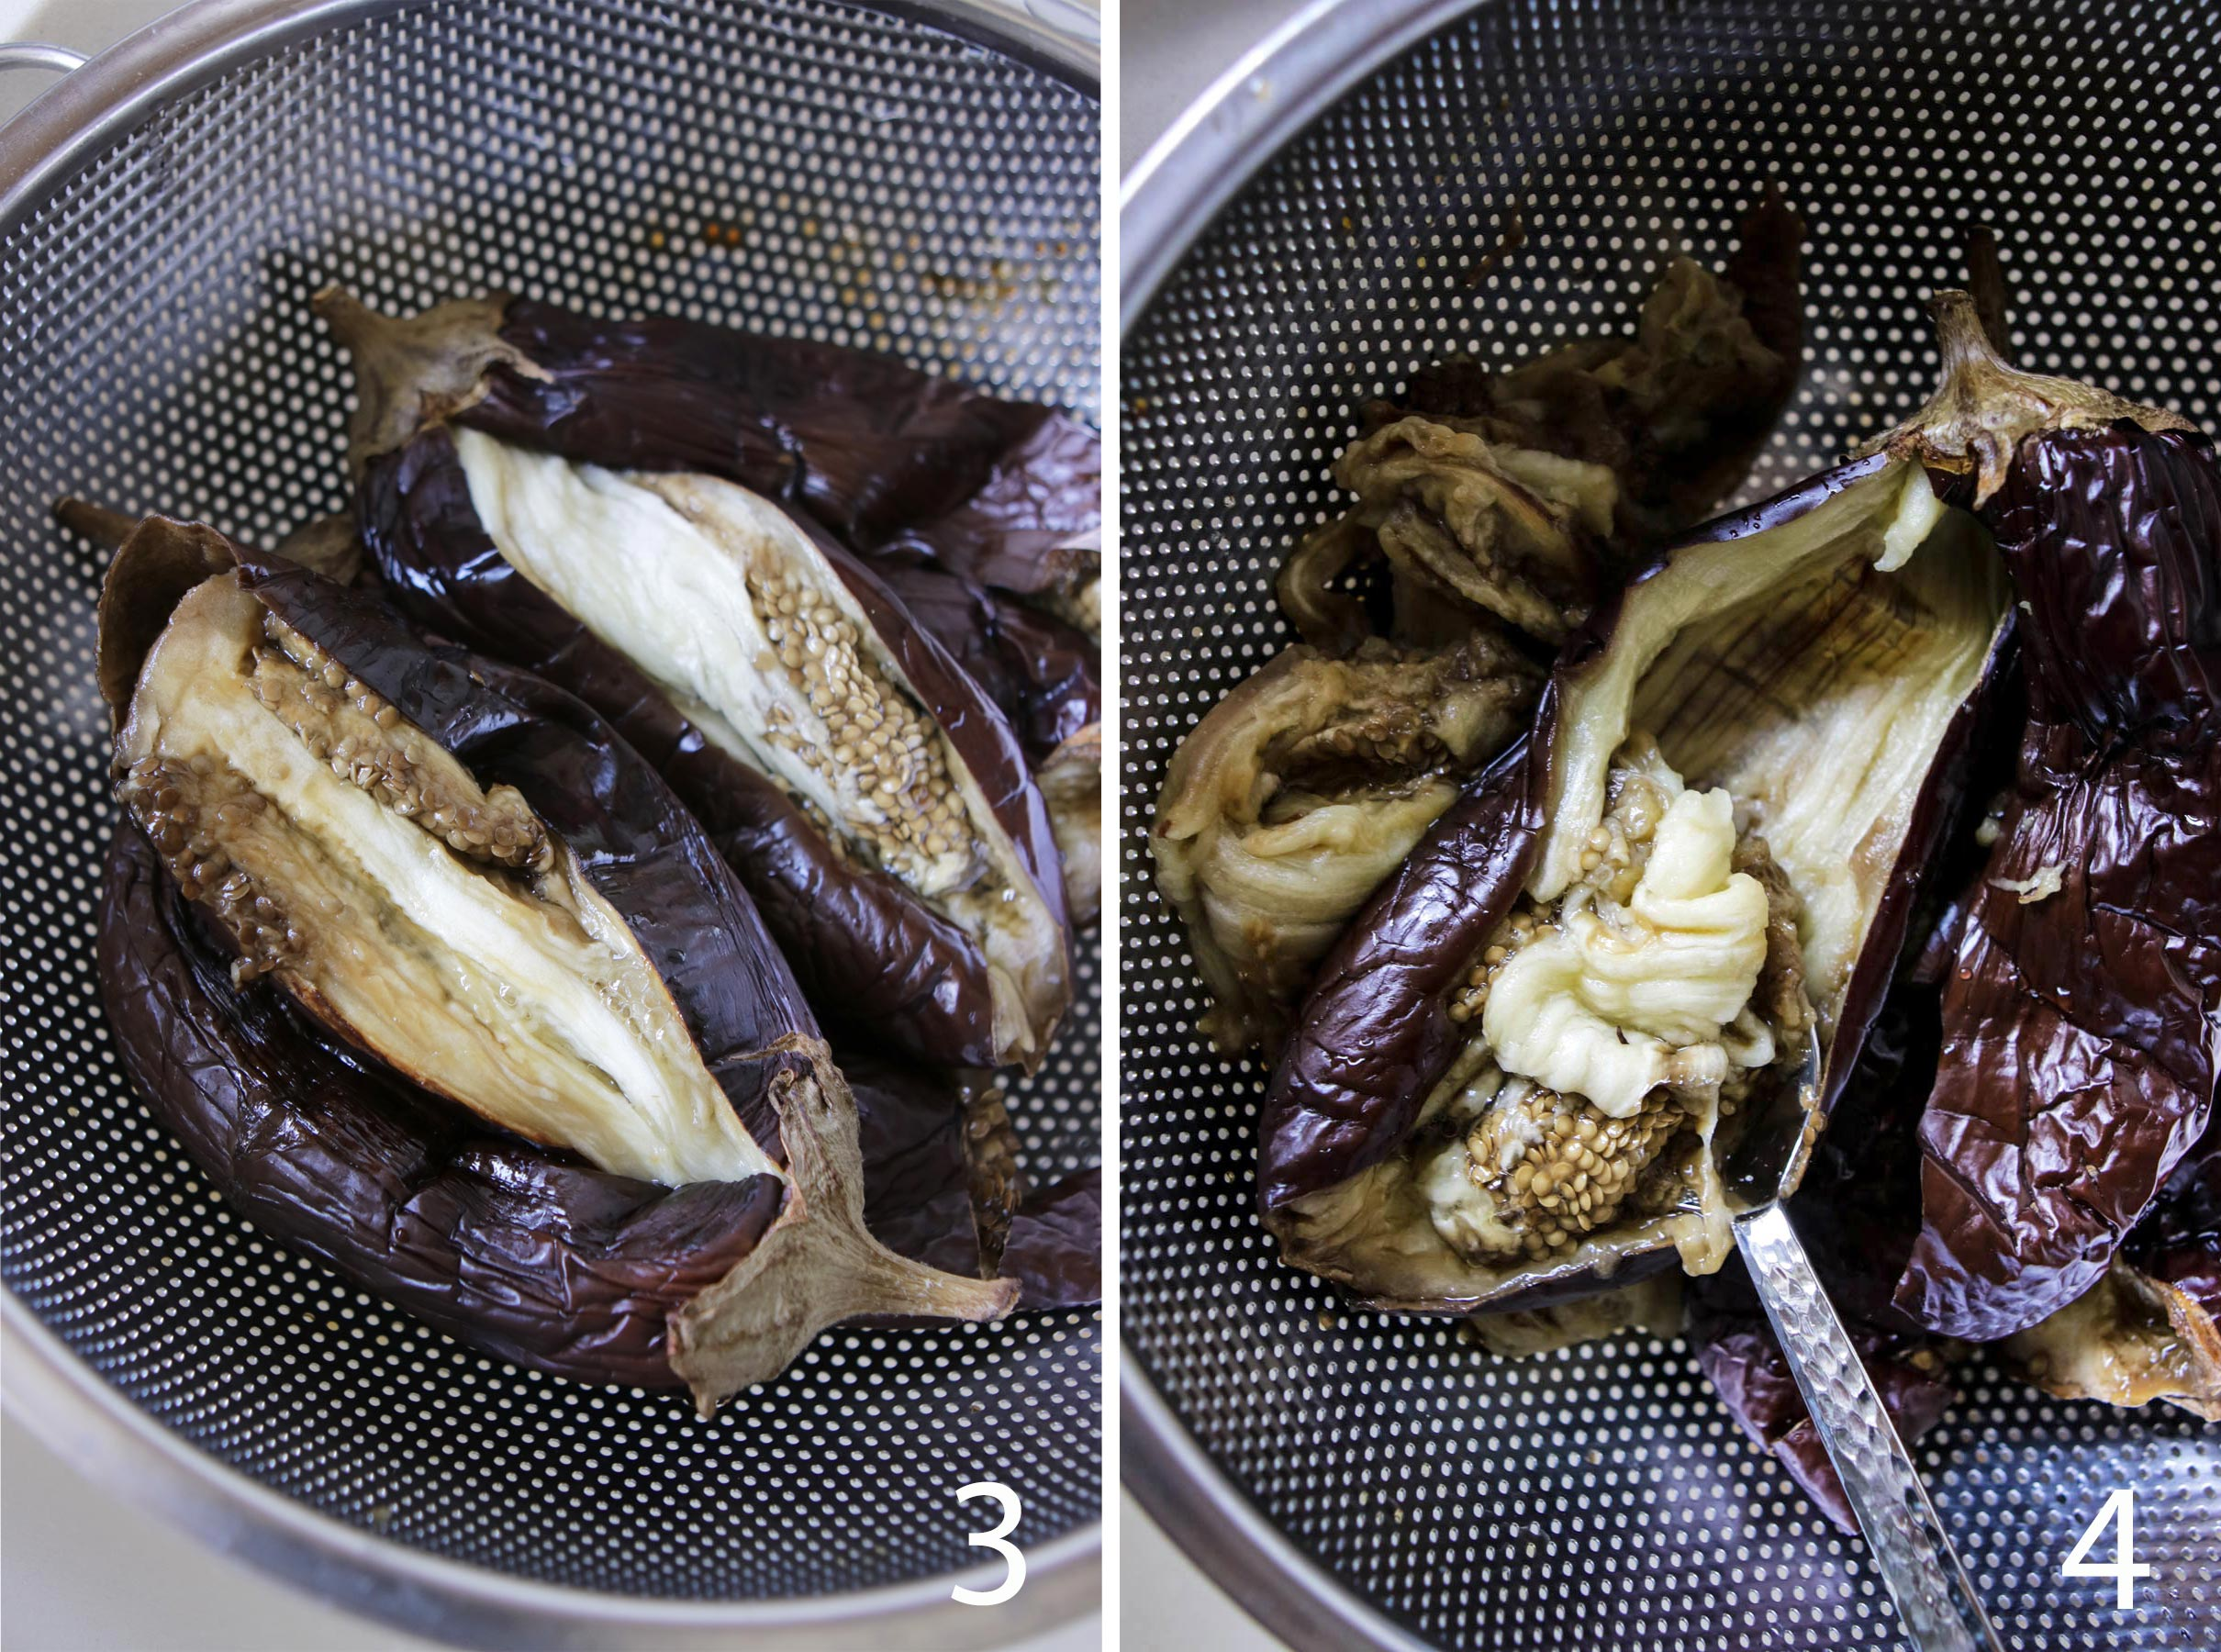 Draining and Scooping Rooasted Eggplants